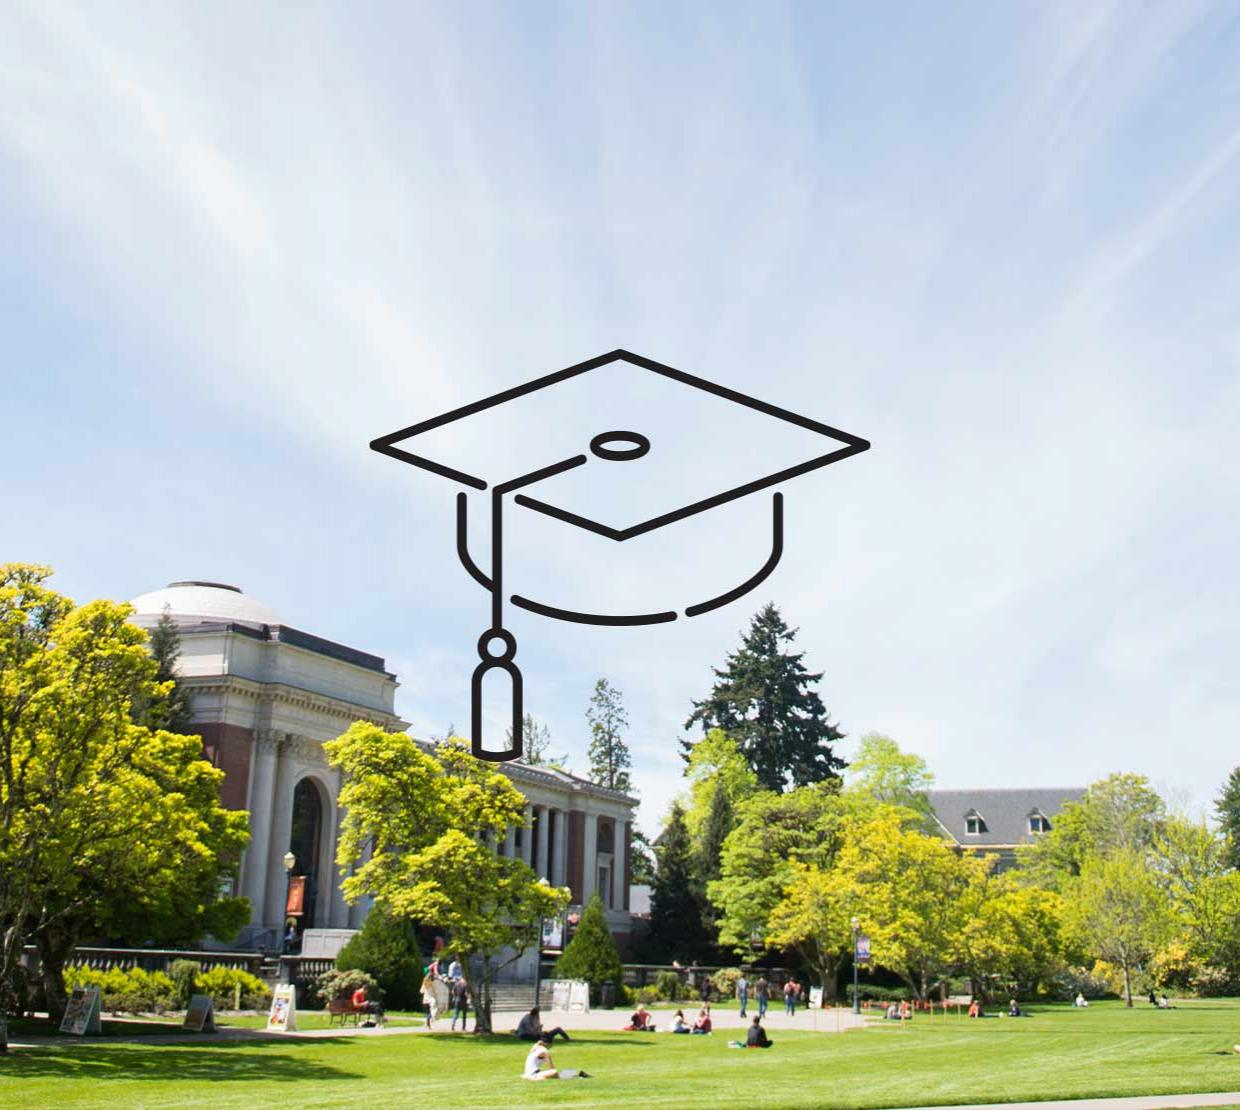 Graduation cap icon above image of the Memorial Union on a bright sunny day